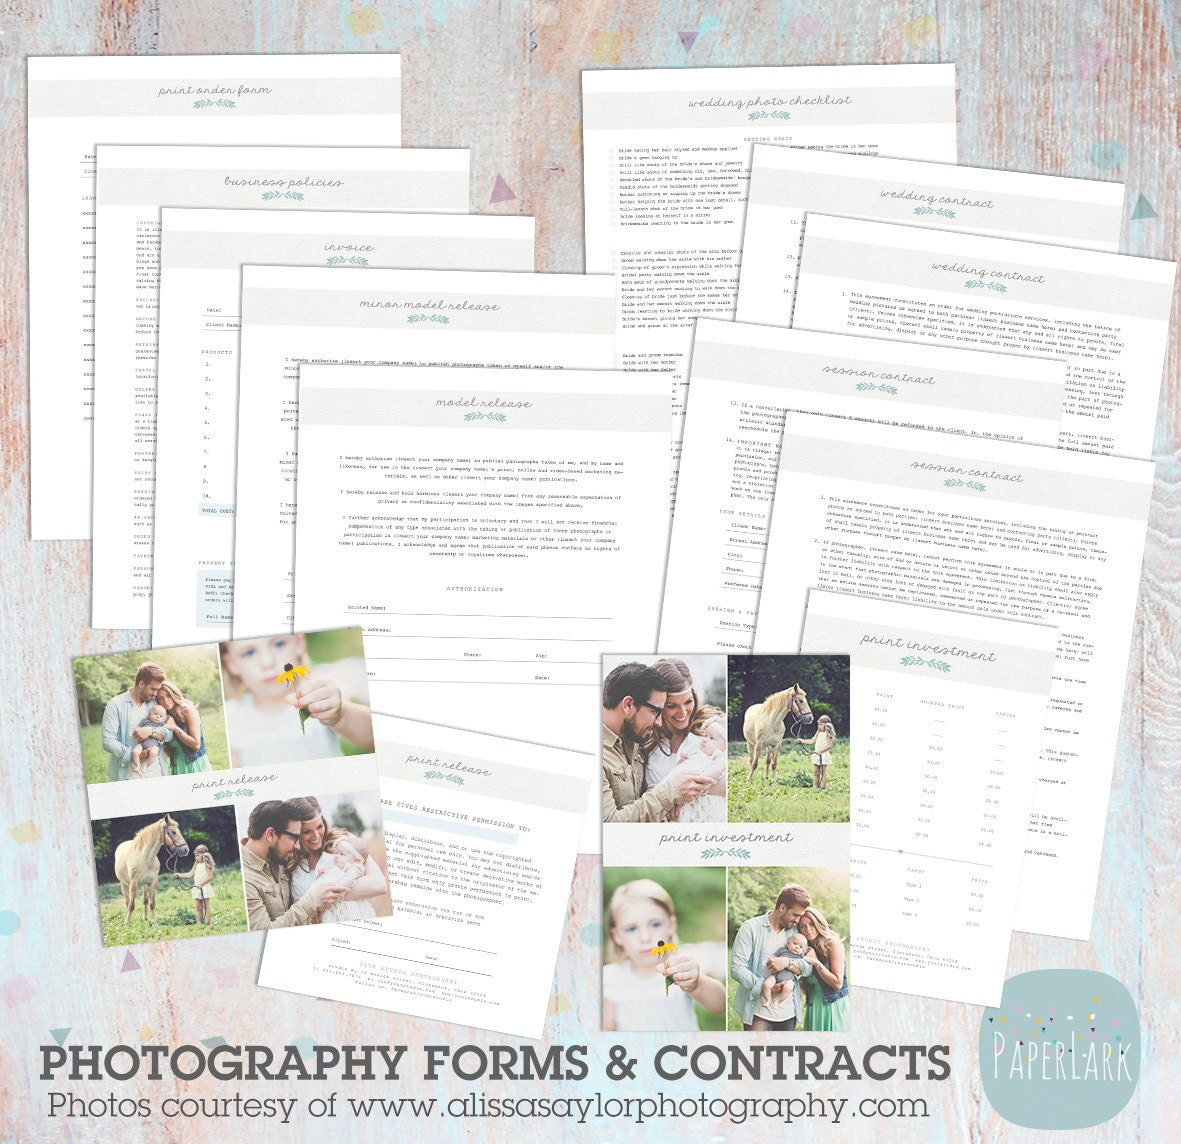 graphy Business Forms and Contracts NG018 INSTANT